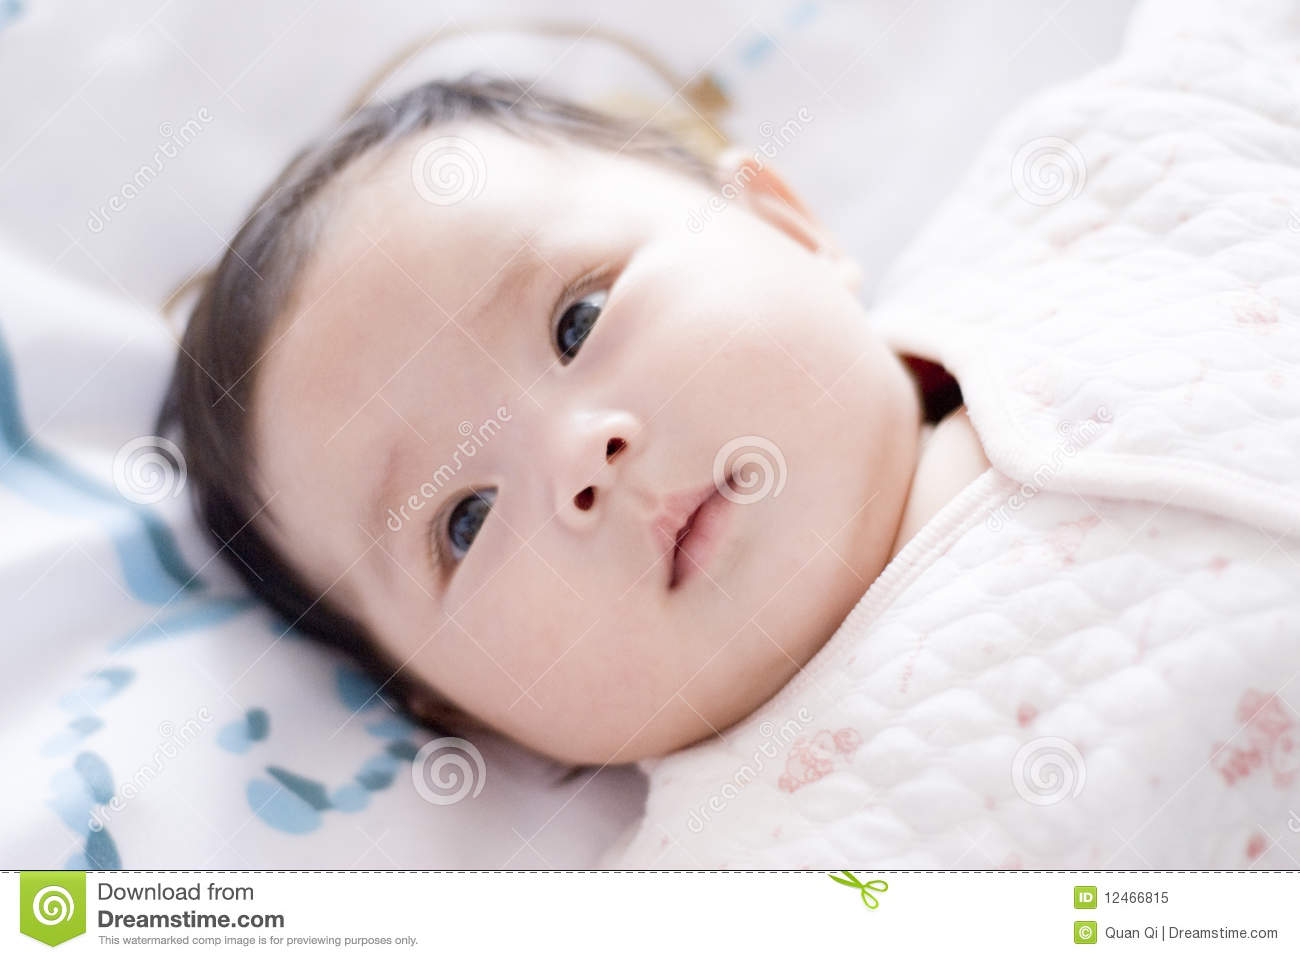 Cute asia baby with fat face